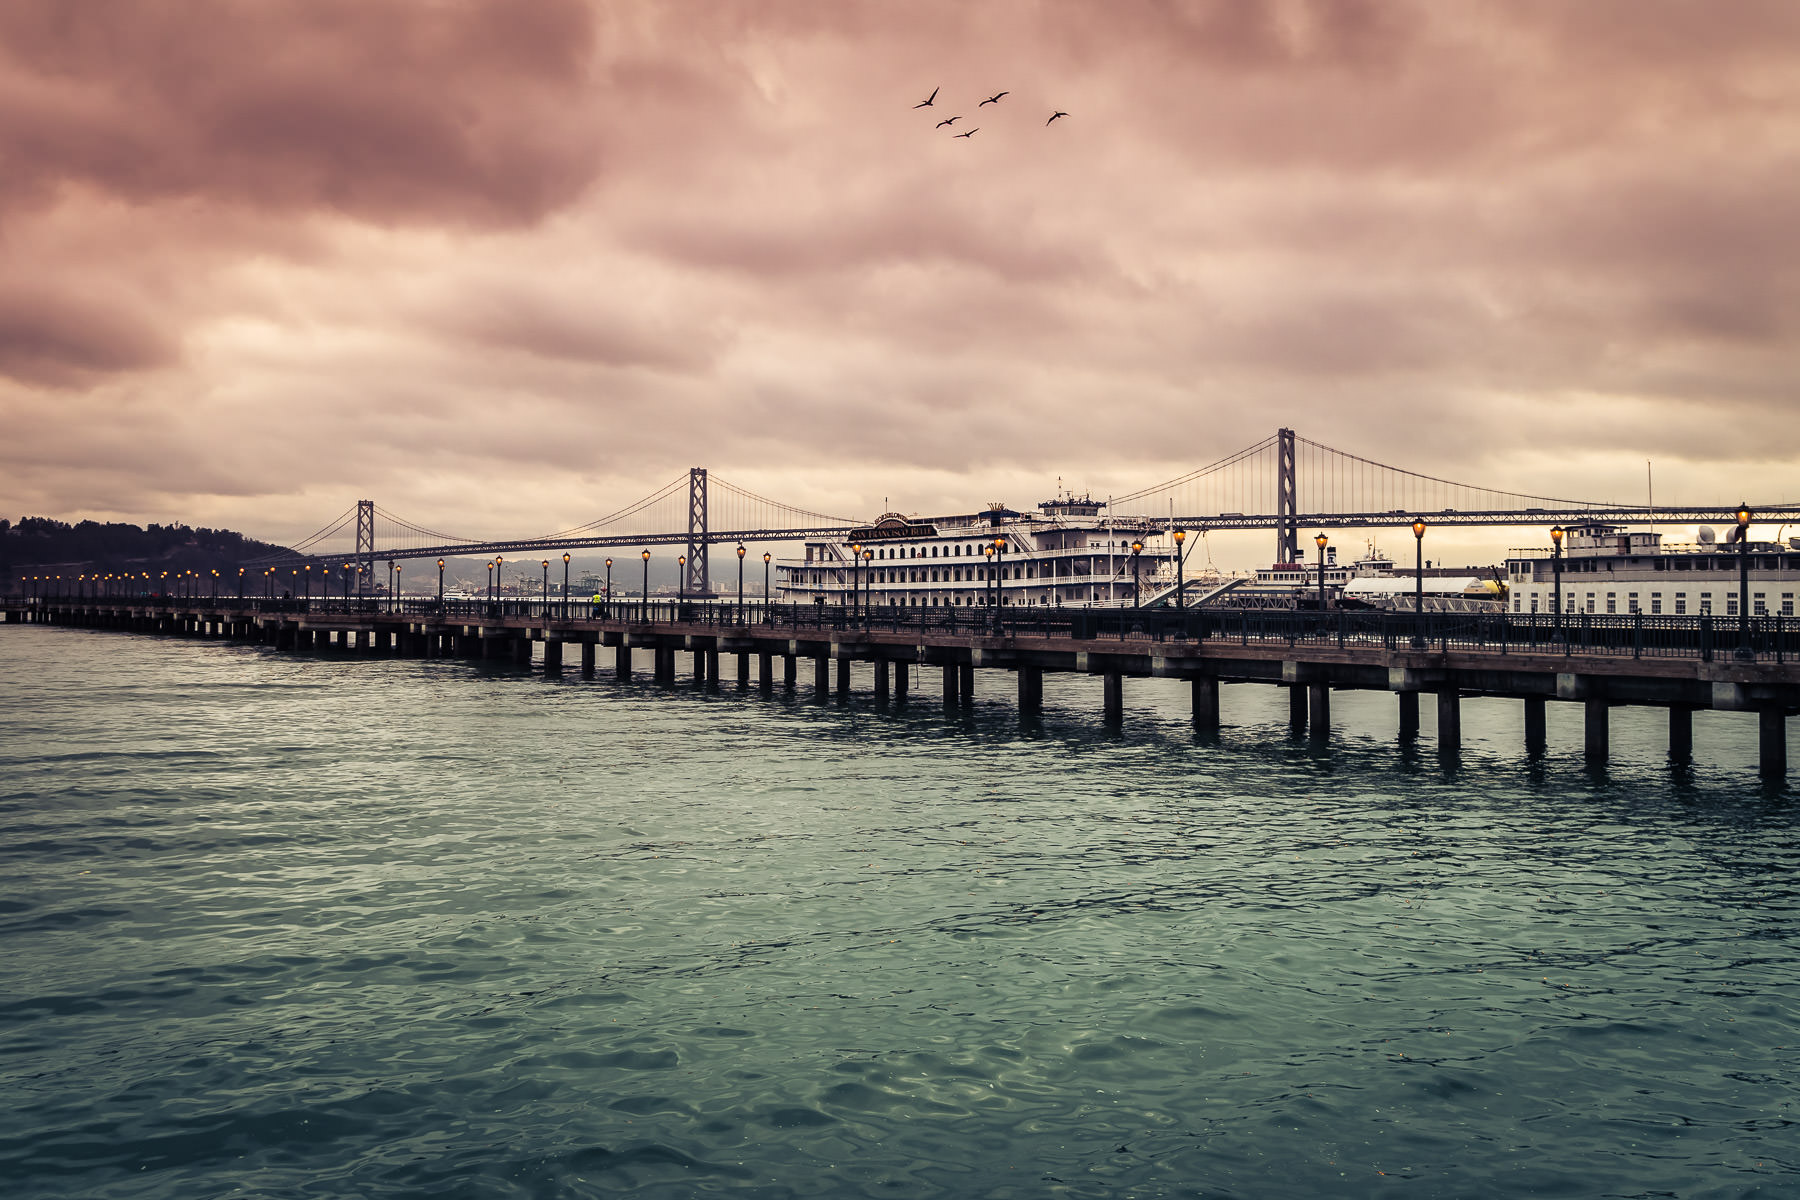 San Francisco's Pier 7 stretches out into San Francisco Bay, overshadowed by the nearby Bay Bridge.